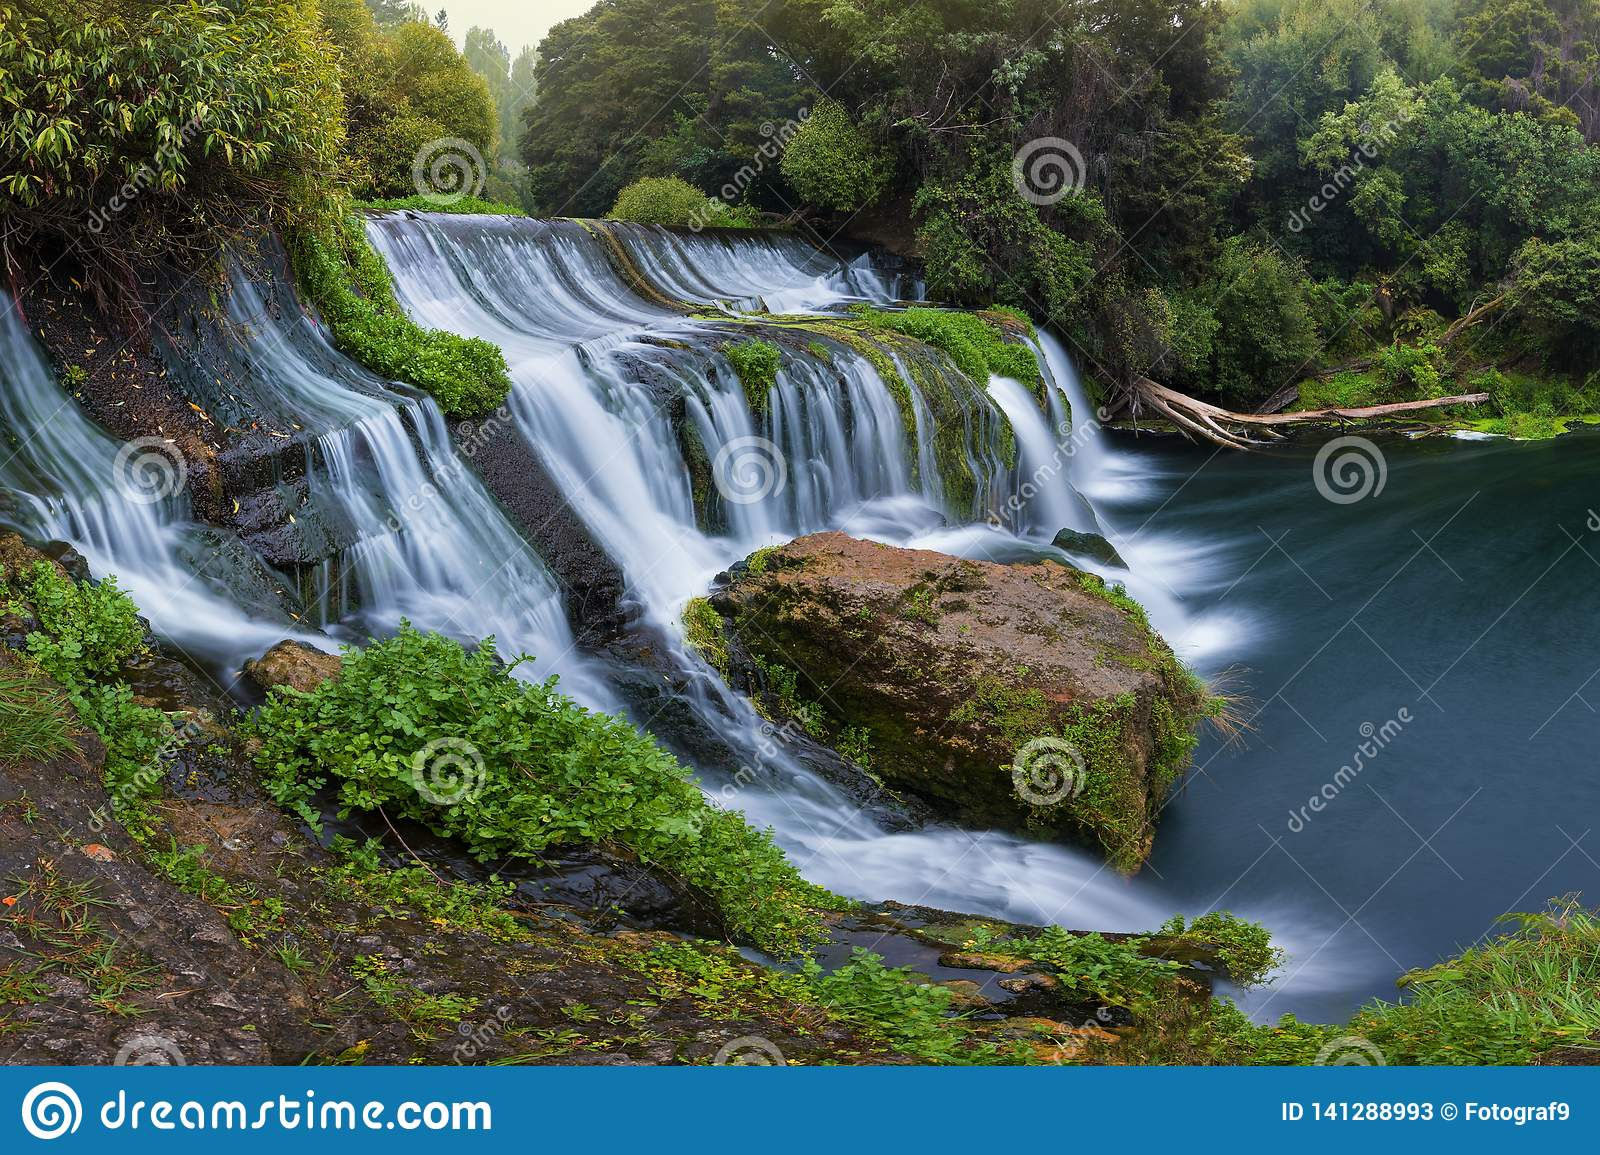 Panoramic photo landscape / Waterfall hidden in the tropical jungle surrounded by a natural swimming pool with clear fresh water.